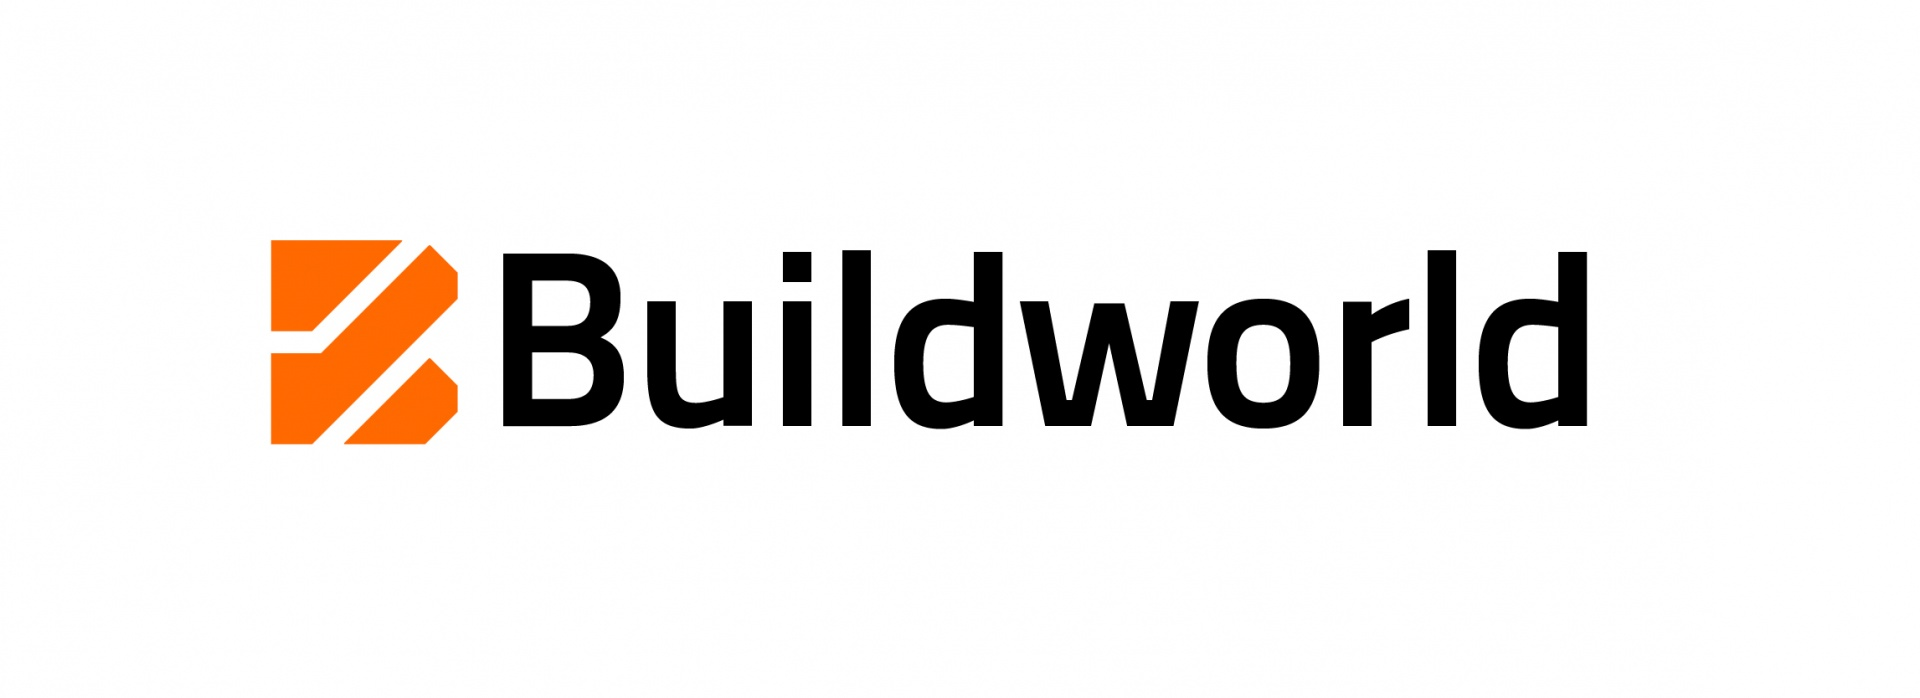 Buildworld